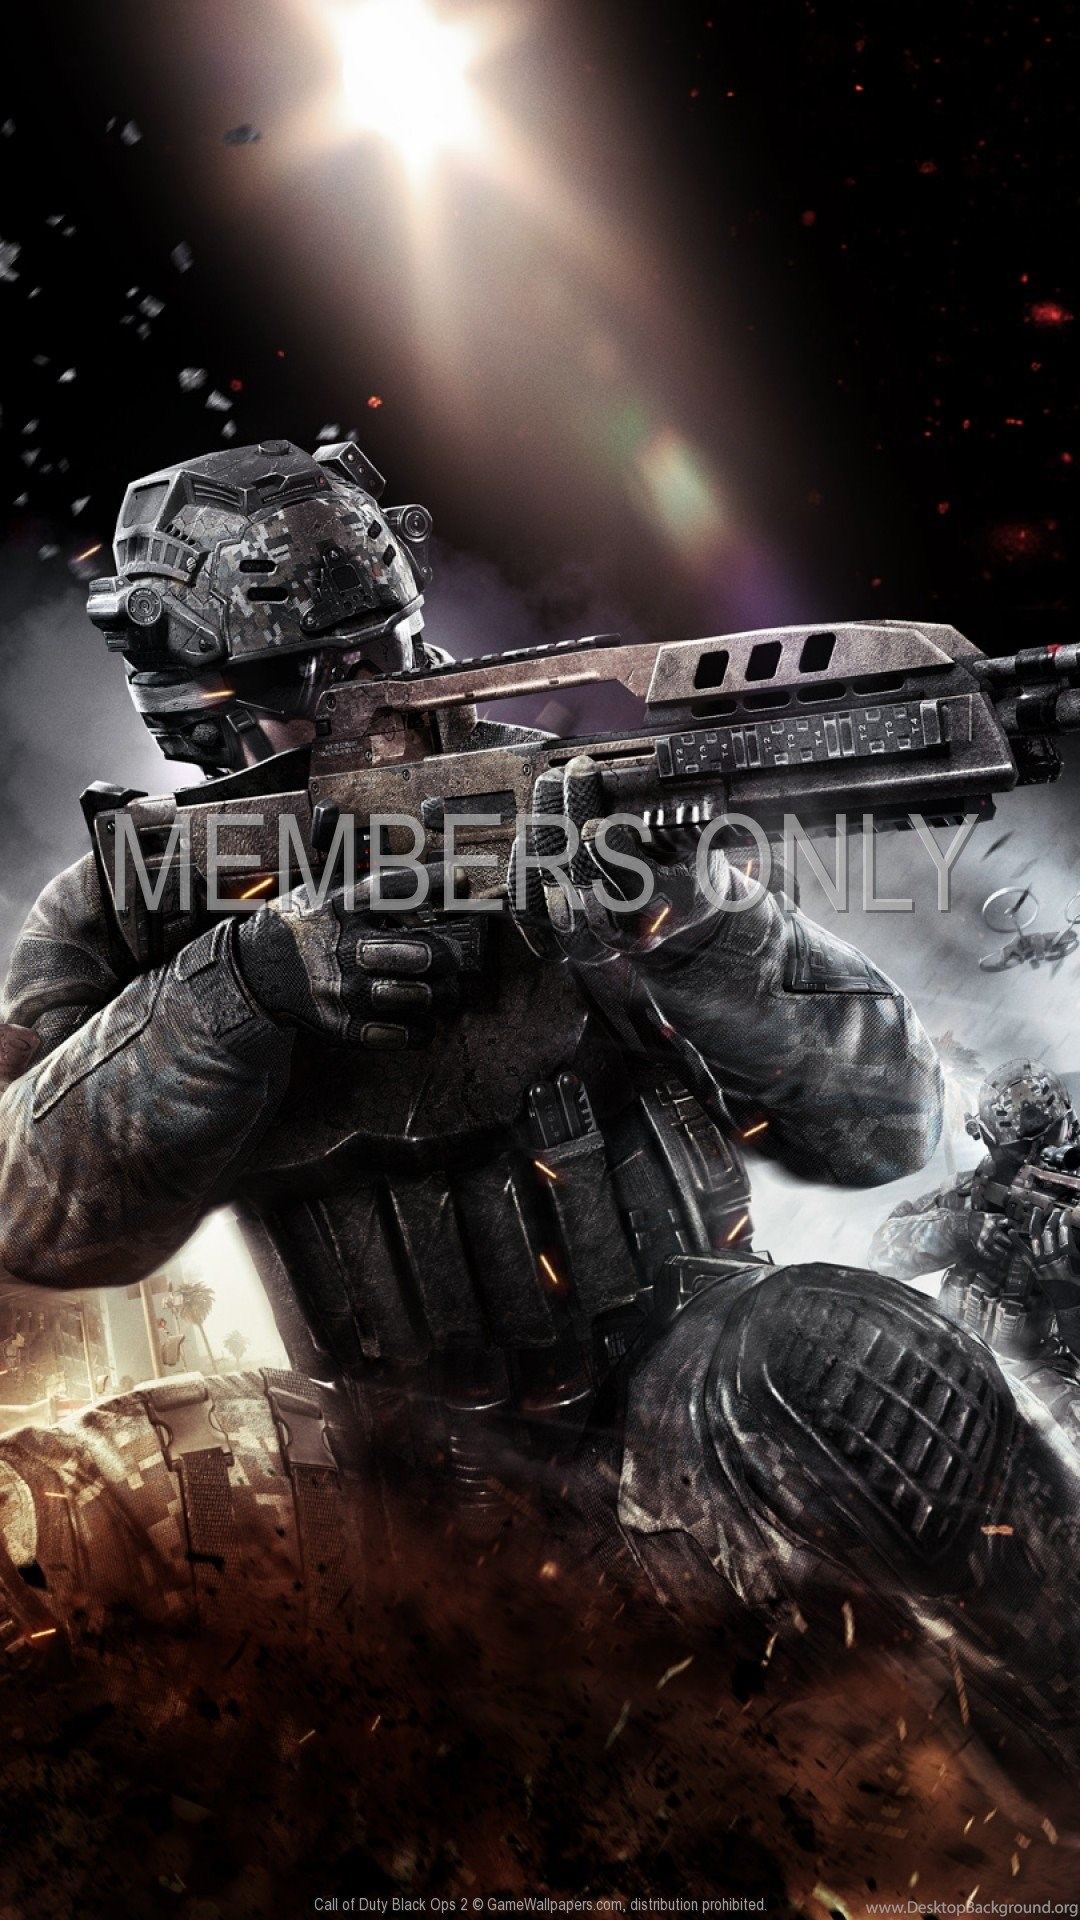 Call Of Duty Black Ops 2 Wallpapers 06 1920x1080 Desktop Background